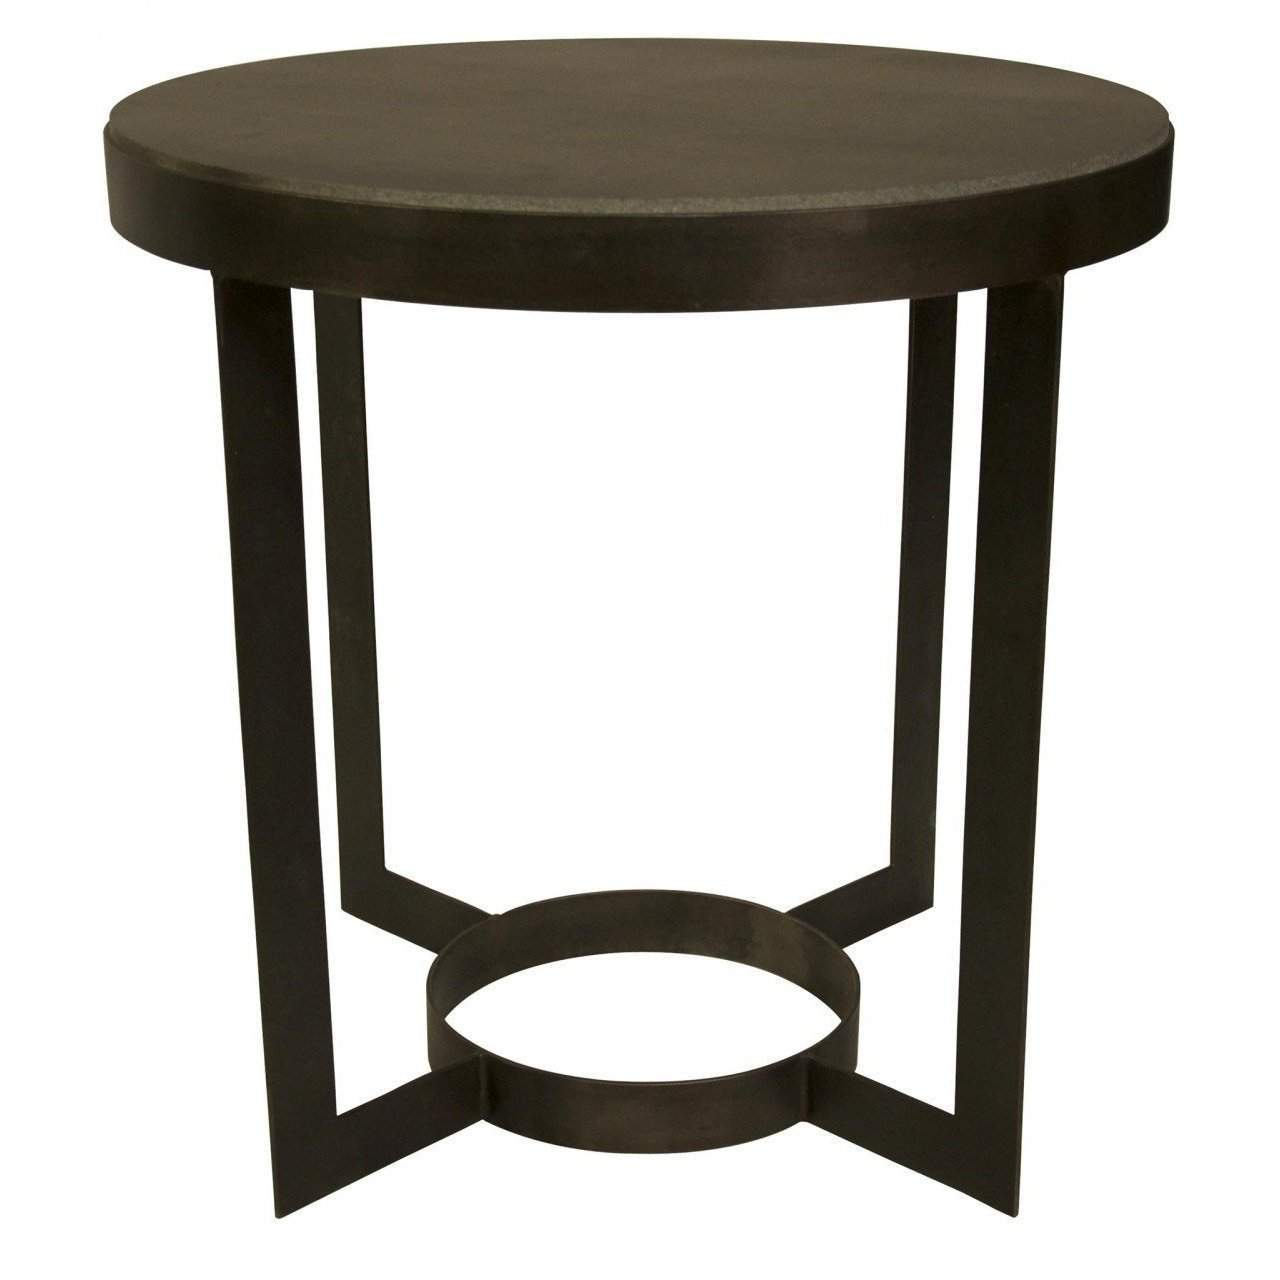 noir parker side table metal and stone lgparker hourglass accent blue hand home cherry dining room furniture your focus runner free pattern west elm tripod floor lamp lawn chair